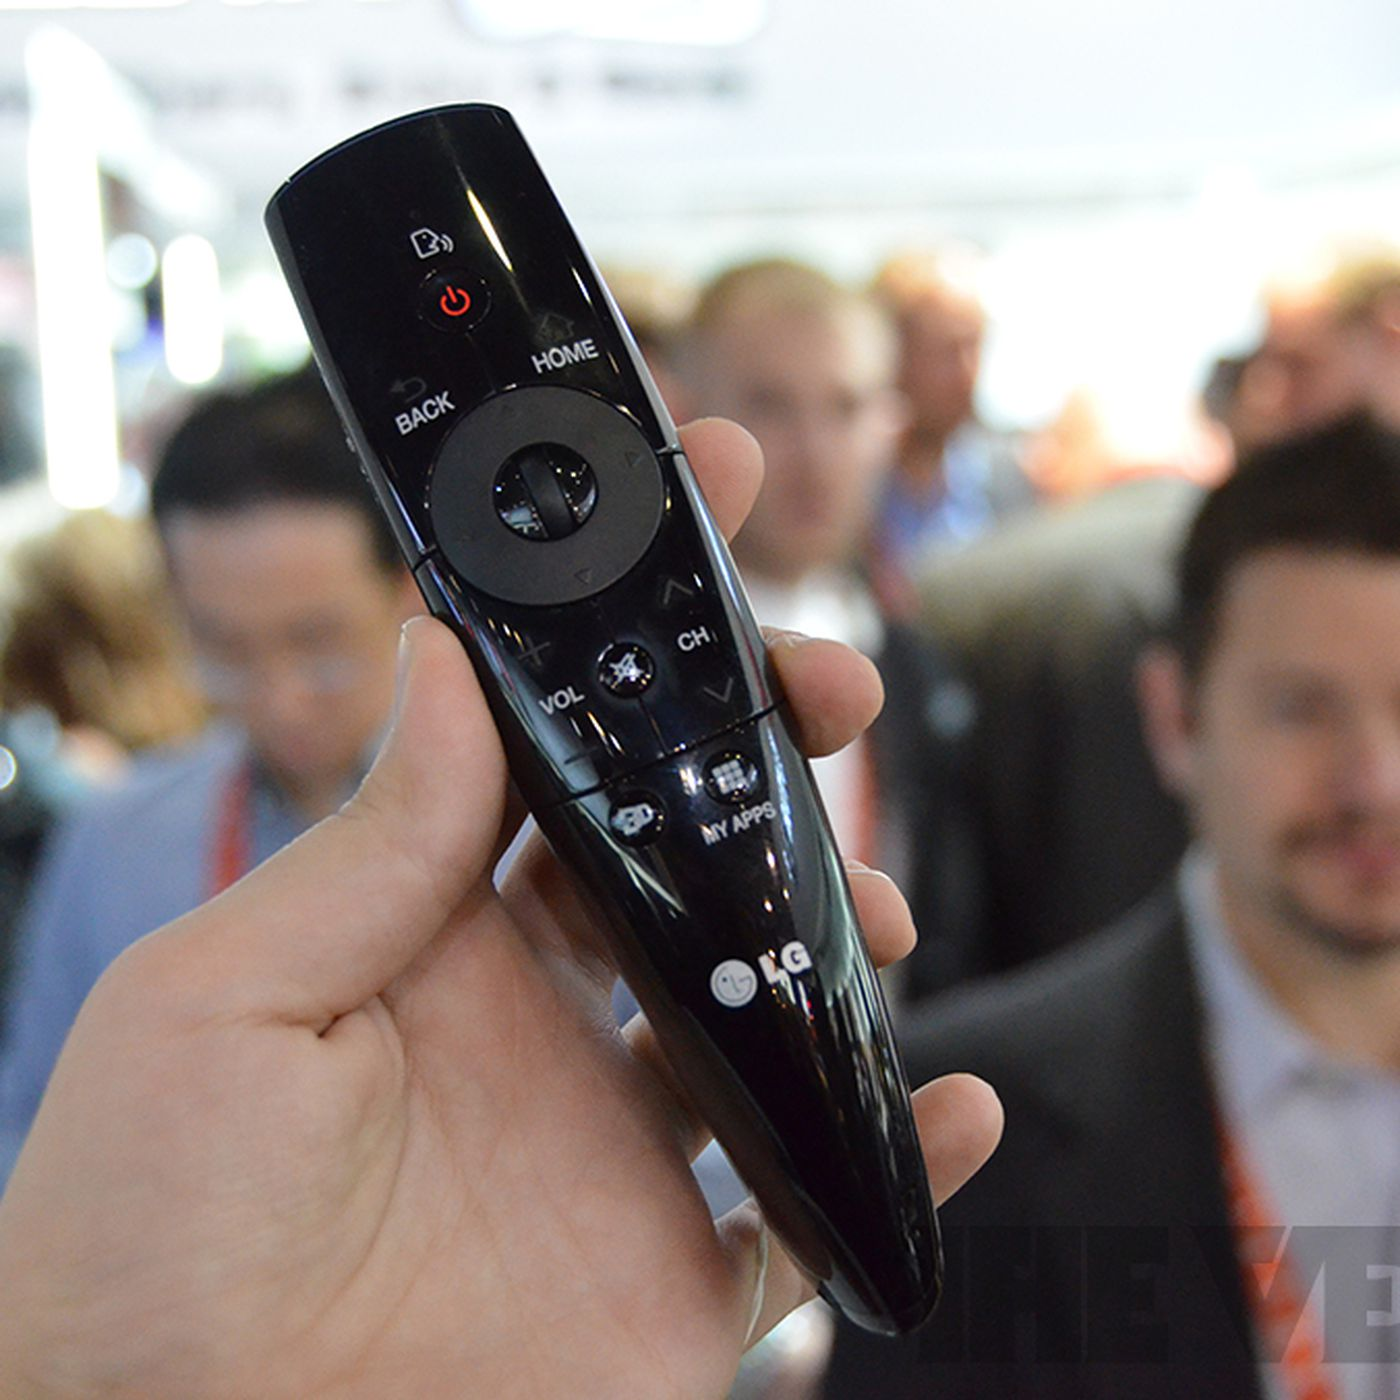 Lgs New Magic Remote With Voice Recognition Video The Verge